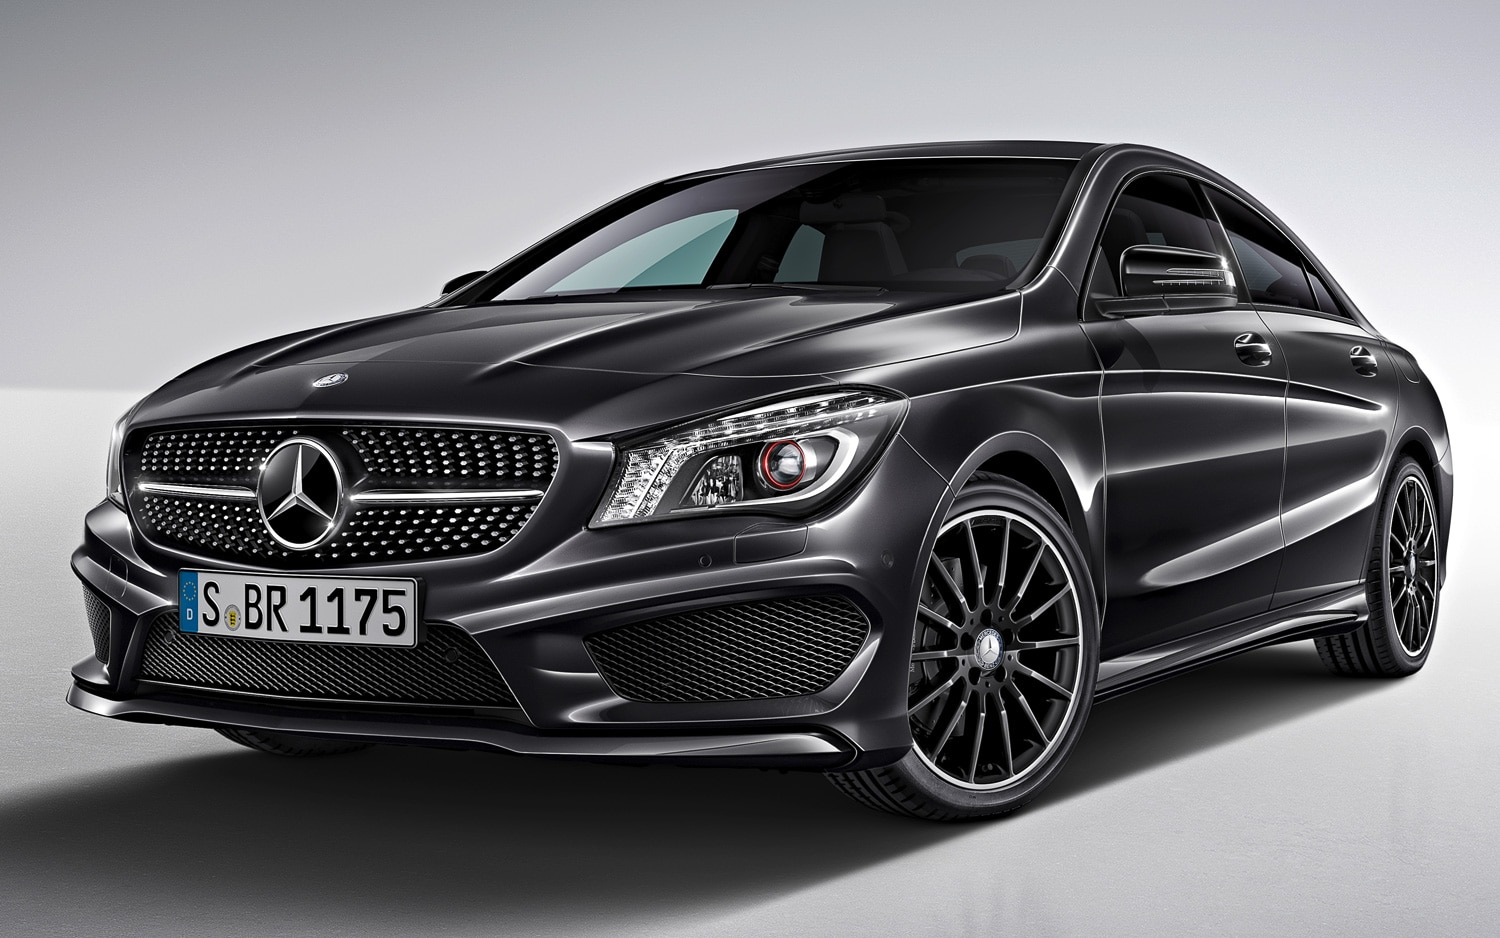 mercedes benz a45 amg cla45 amg featured in ps4 39 s driveclub game. Black Bedroom Furniture Sets. Home Design Ideas